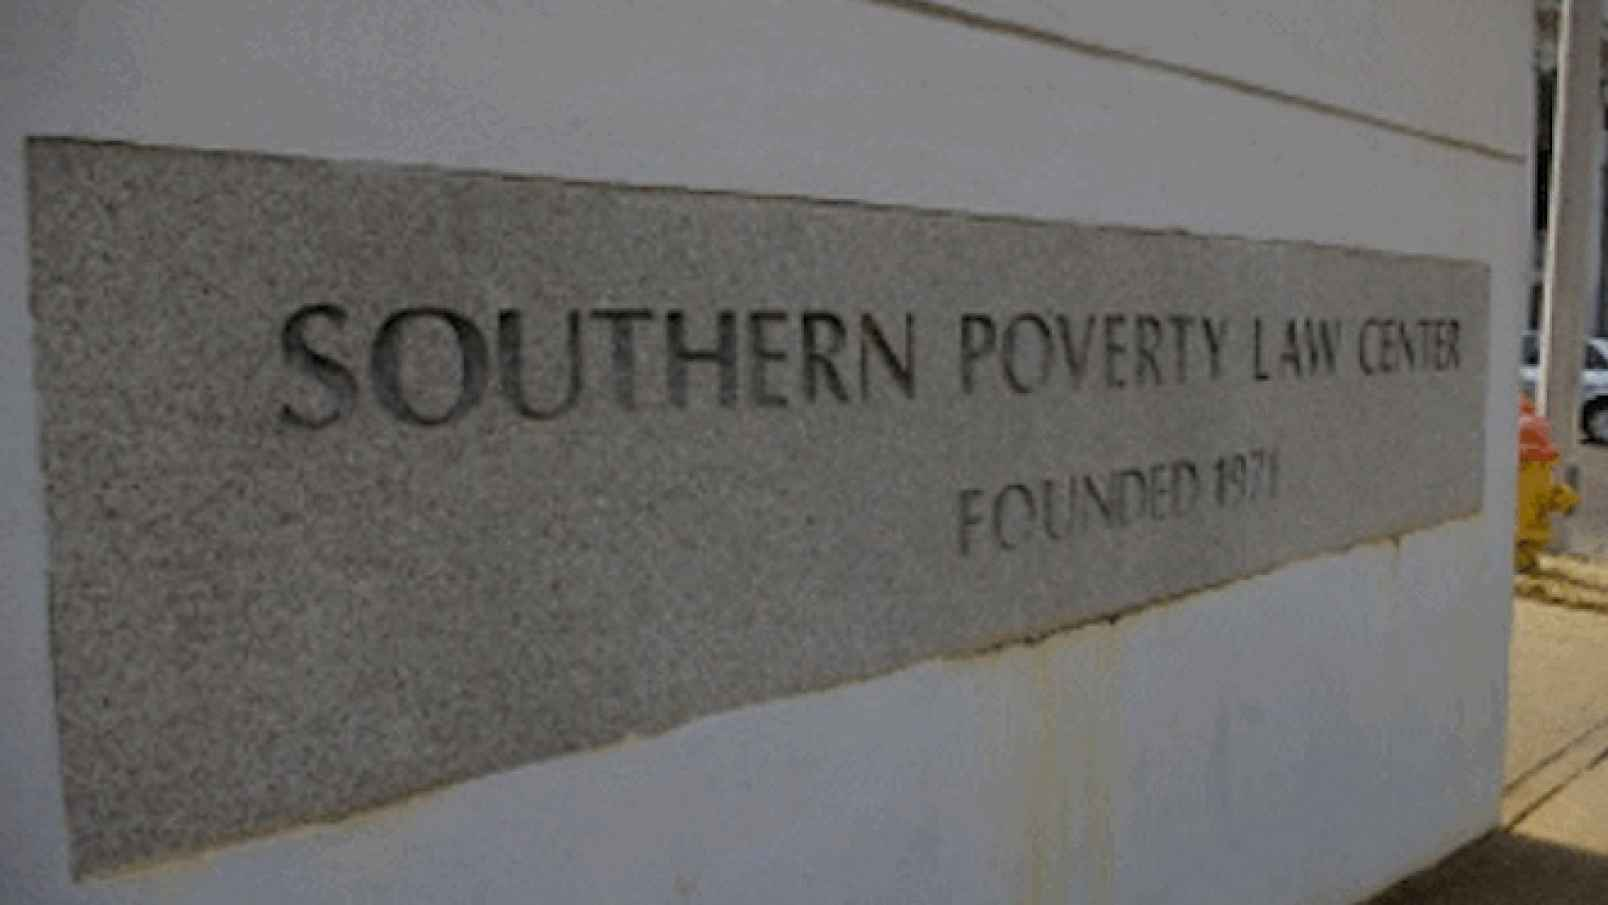 Rabidly Liberal Southern Poverty Law Center Apologizes for Pushing Fake White Supremacist News